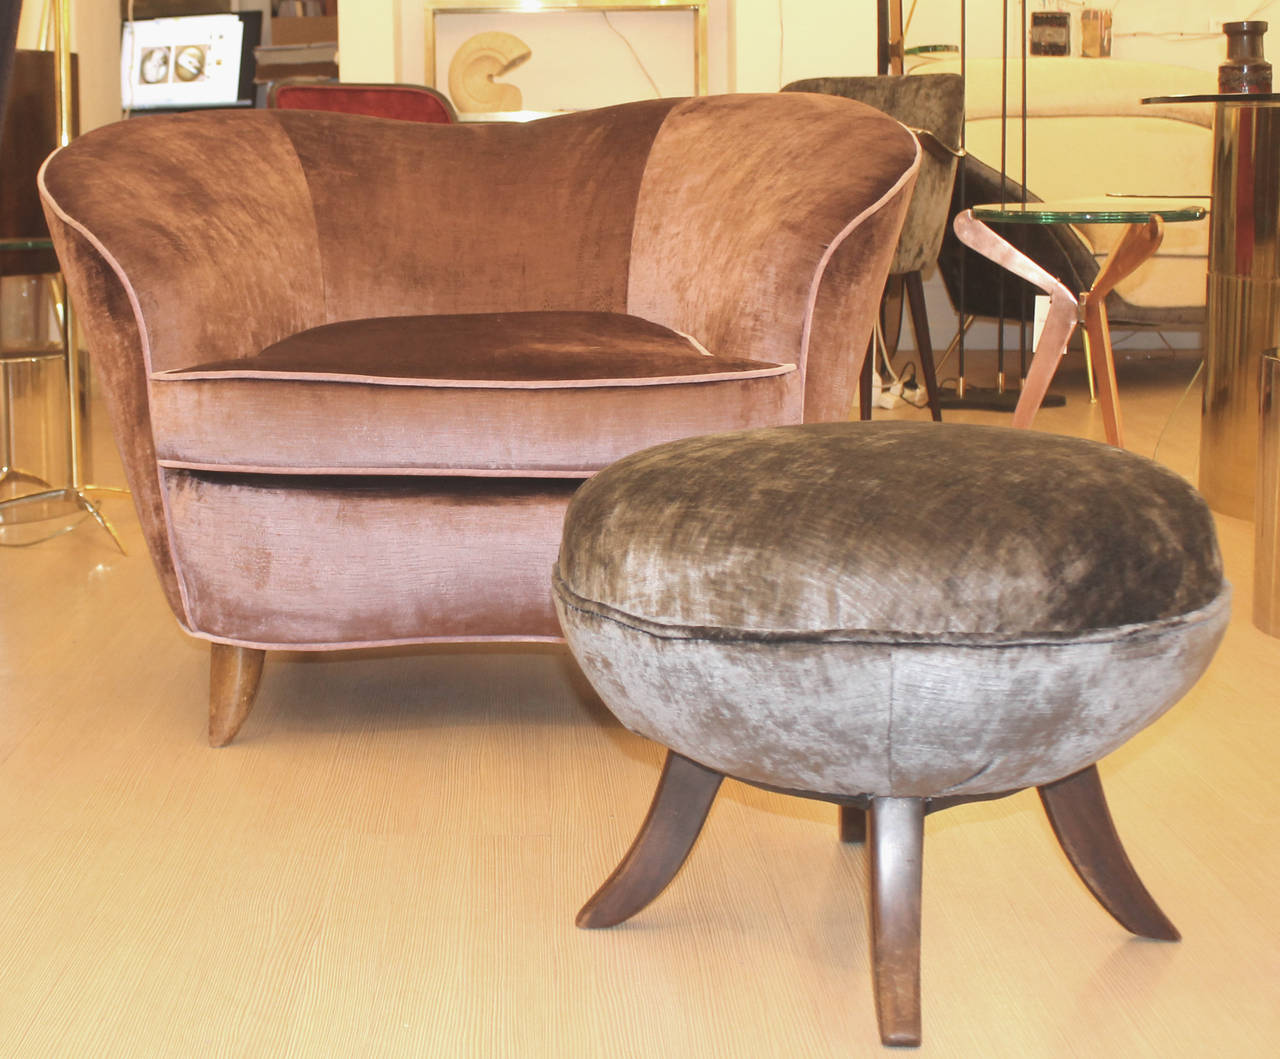 Big Comfortable Chairs Pair Of Large Comfortable Lounge Chairs With Ottoman At